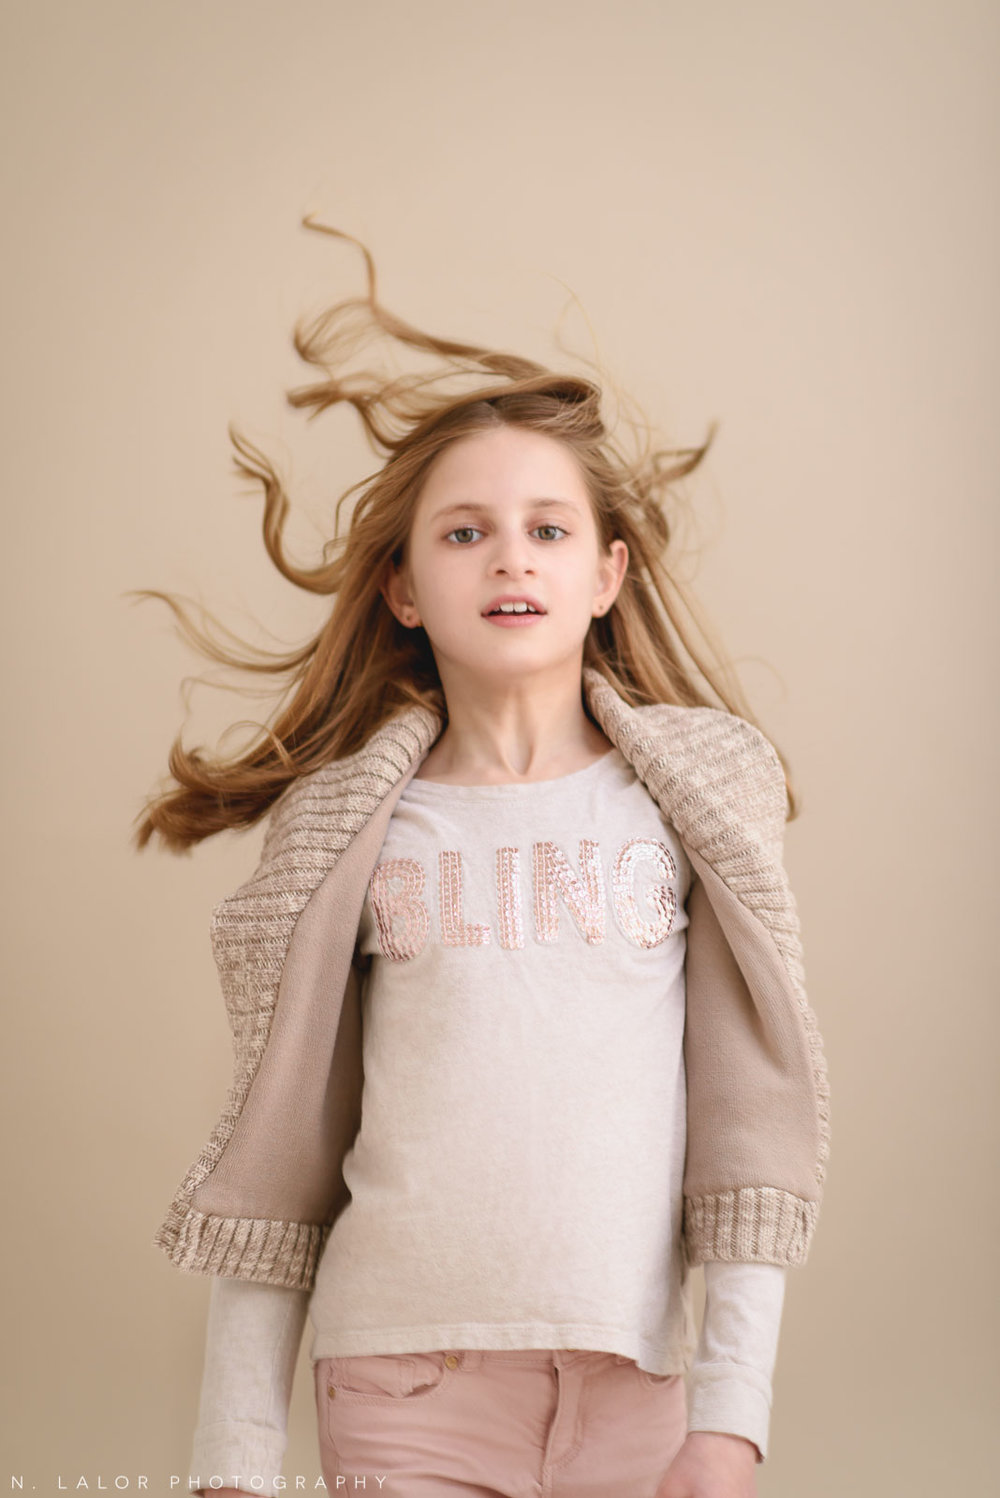 Hair and BLING. Tween Studio photoshoot by N. Lalor Photography, located in Greenwich, CT.